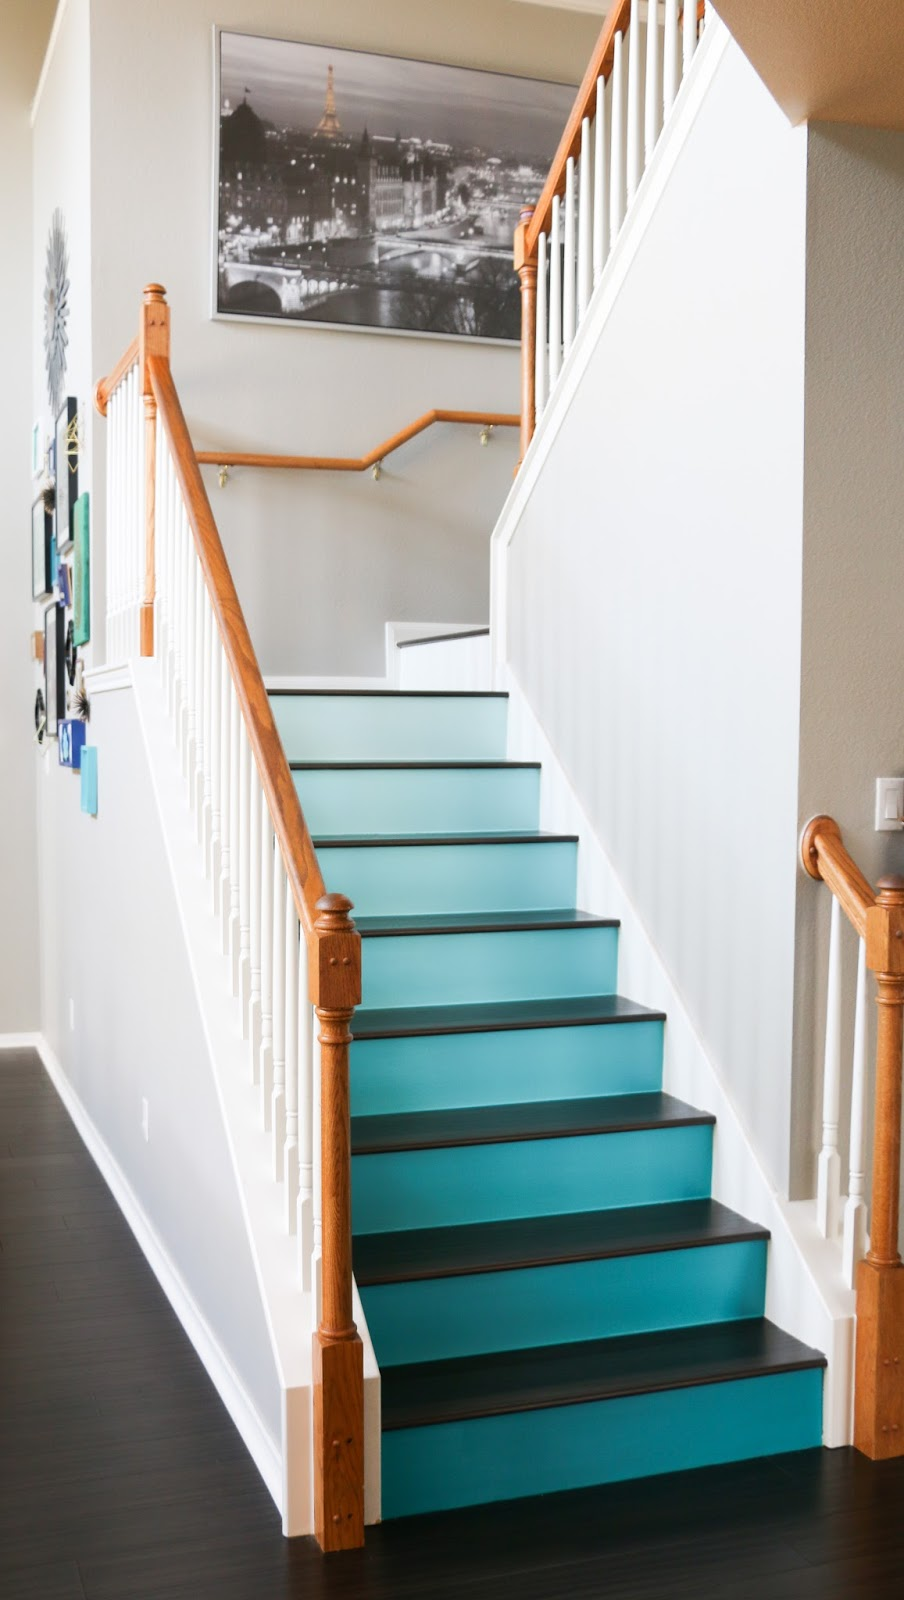 8 Step-By-Step Ways to Update Your Stairs - interior design